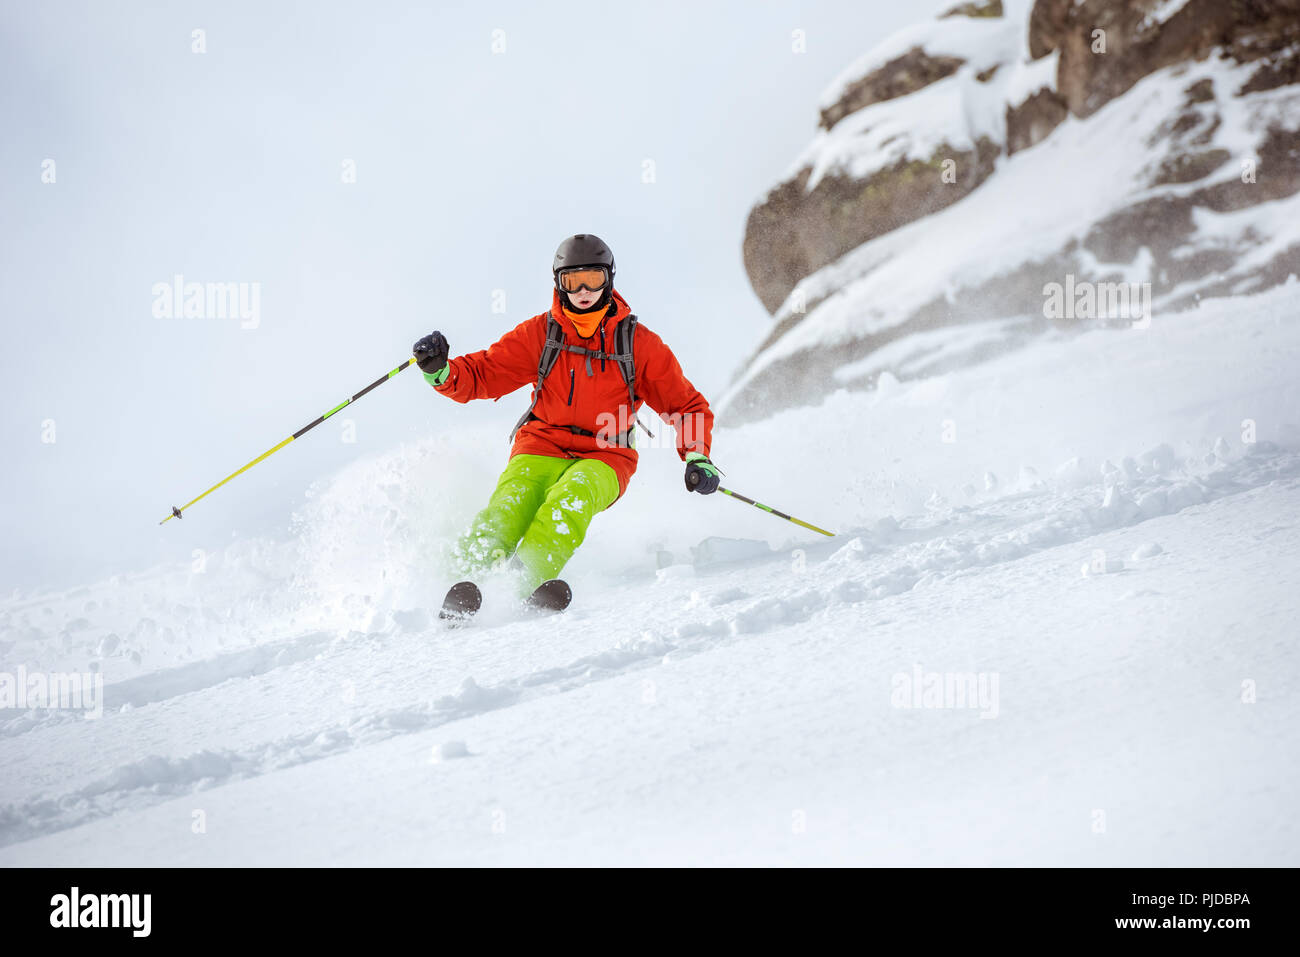 Skier freerides very fast at offpiste slope - Stock Image